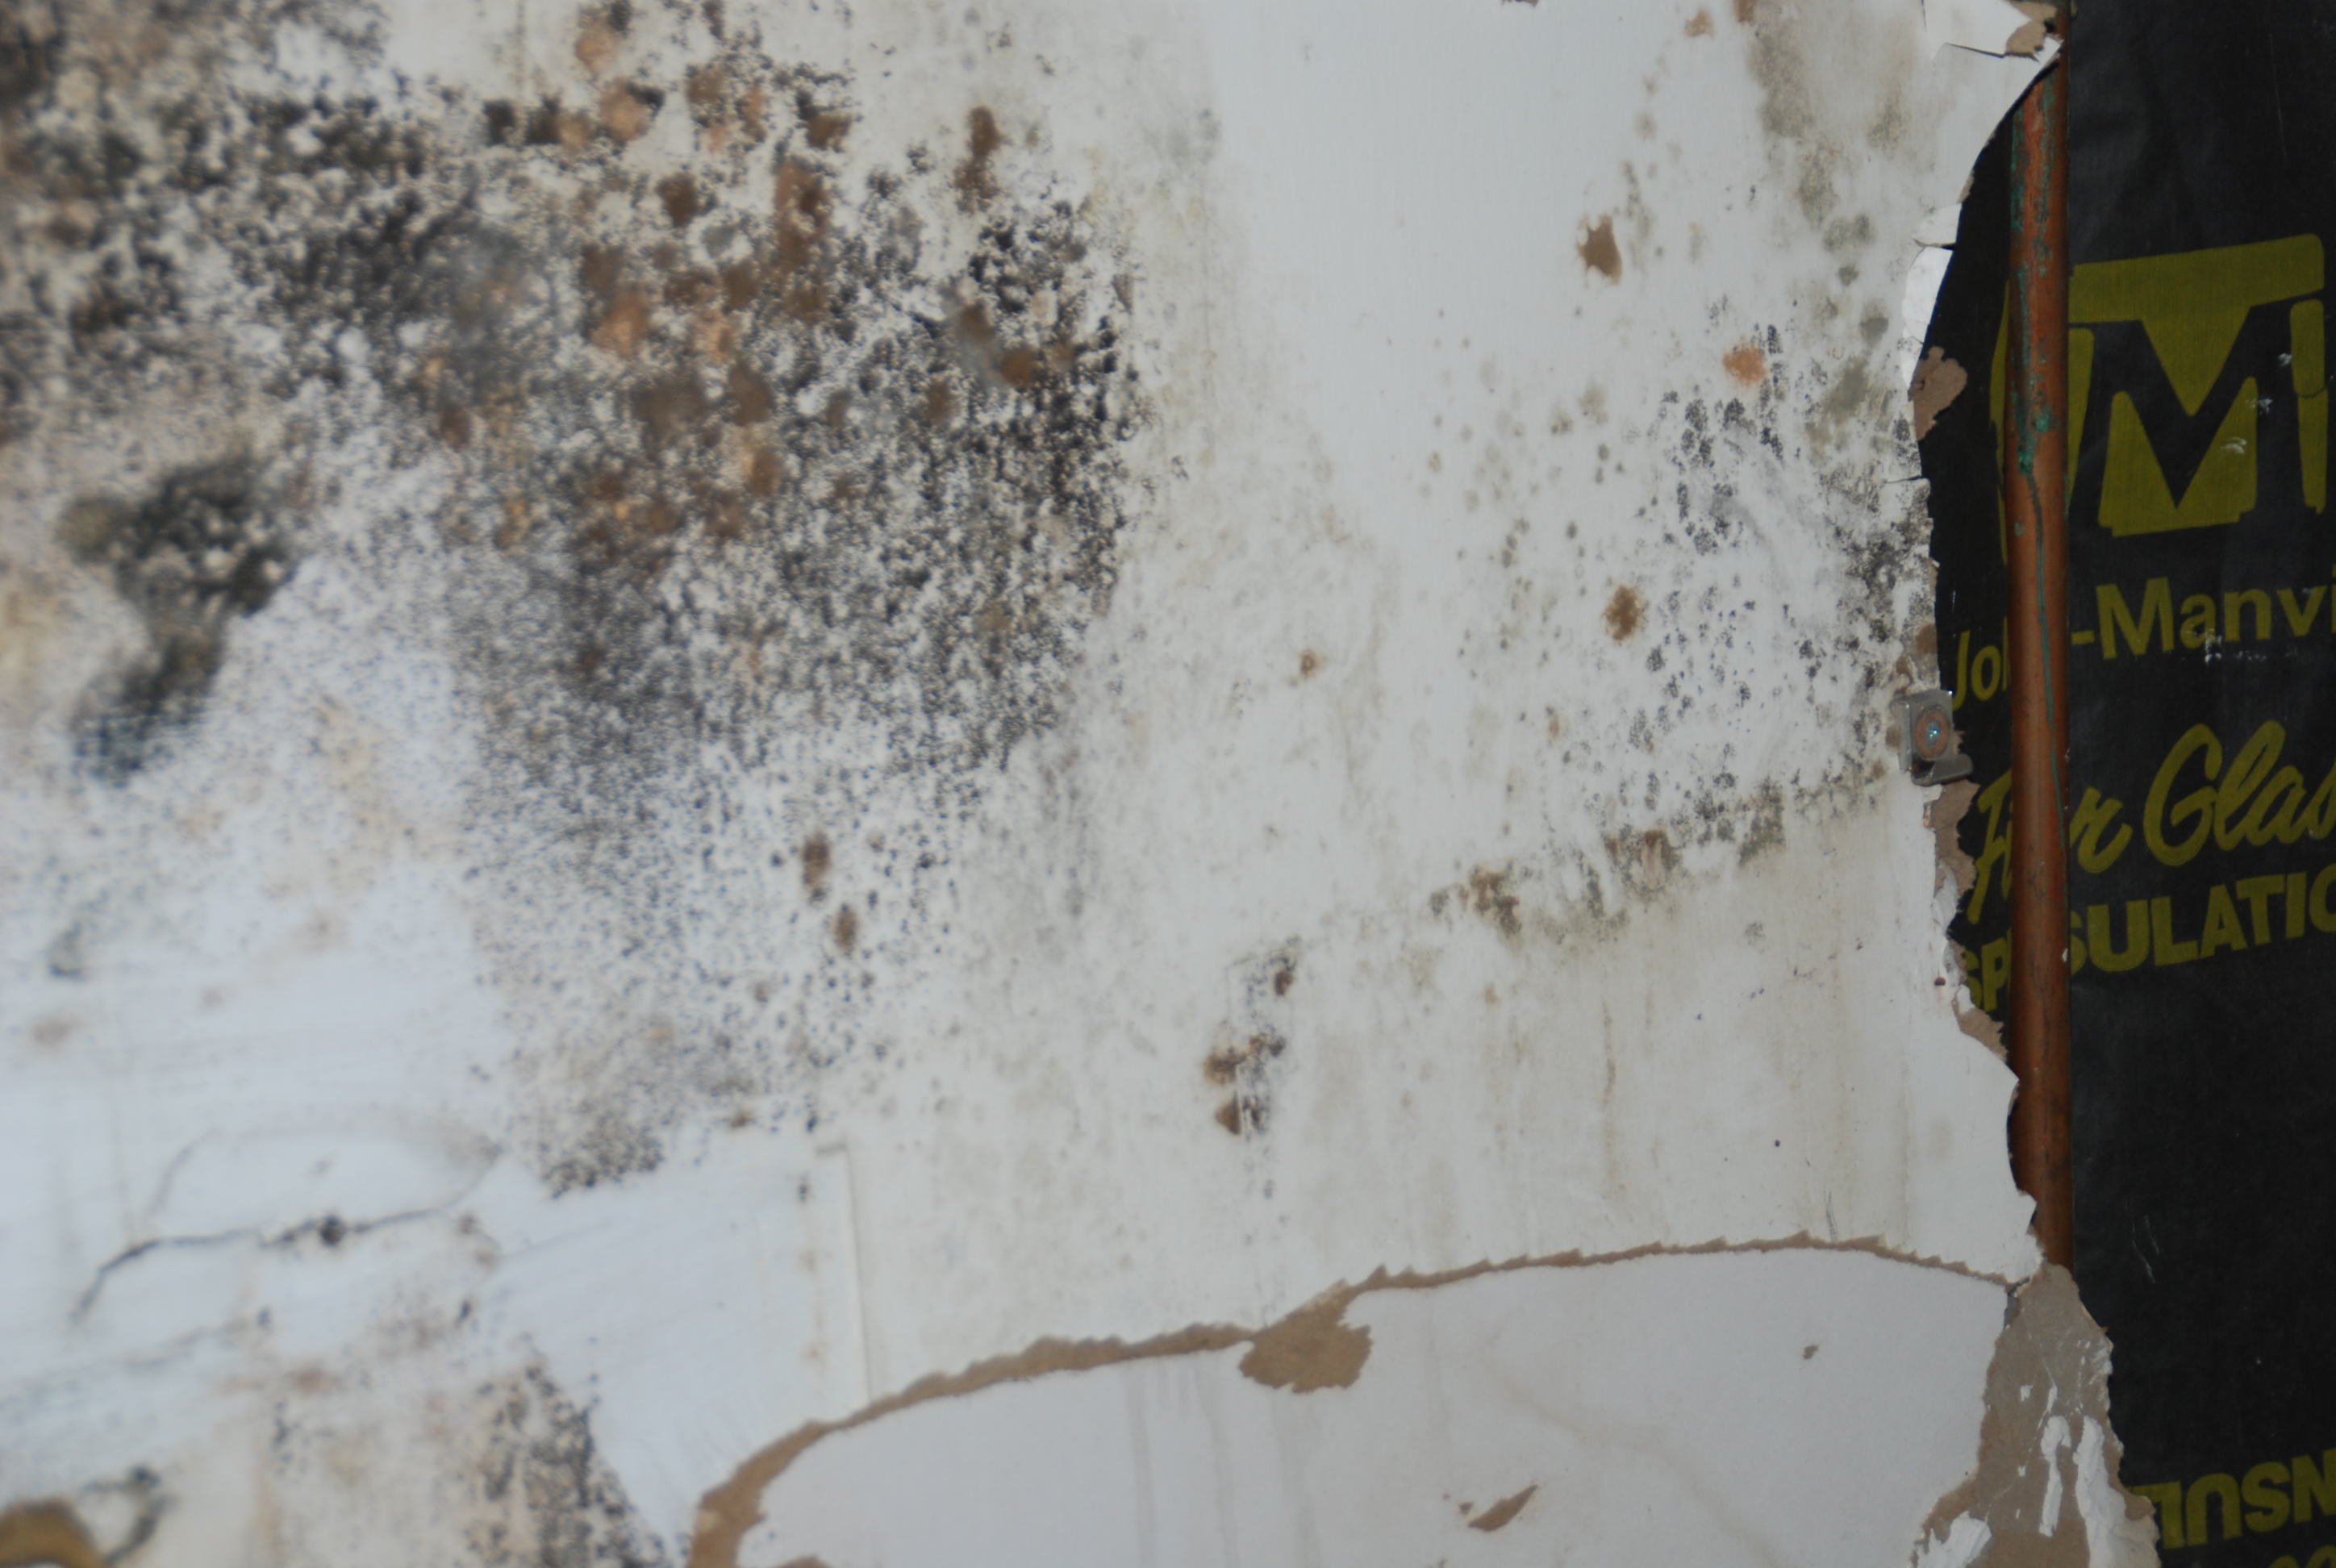 Mold in your home?  Now what to do?